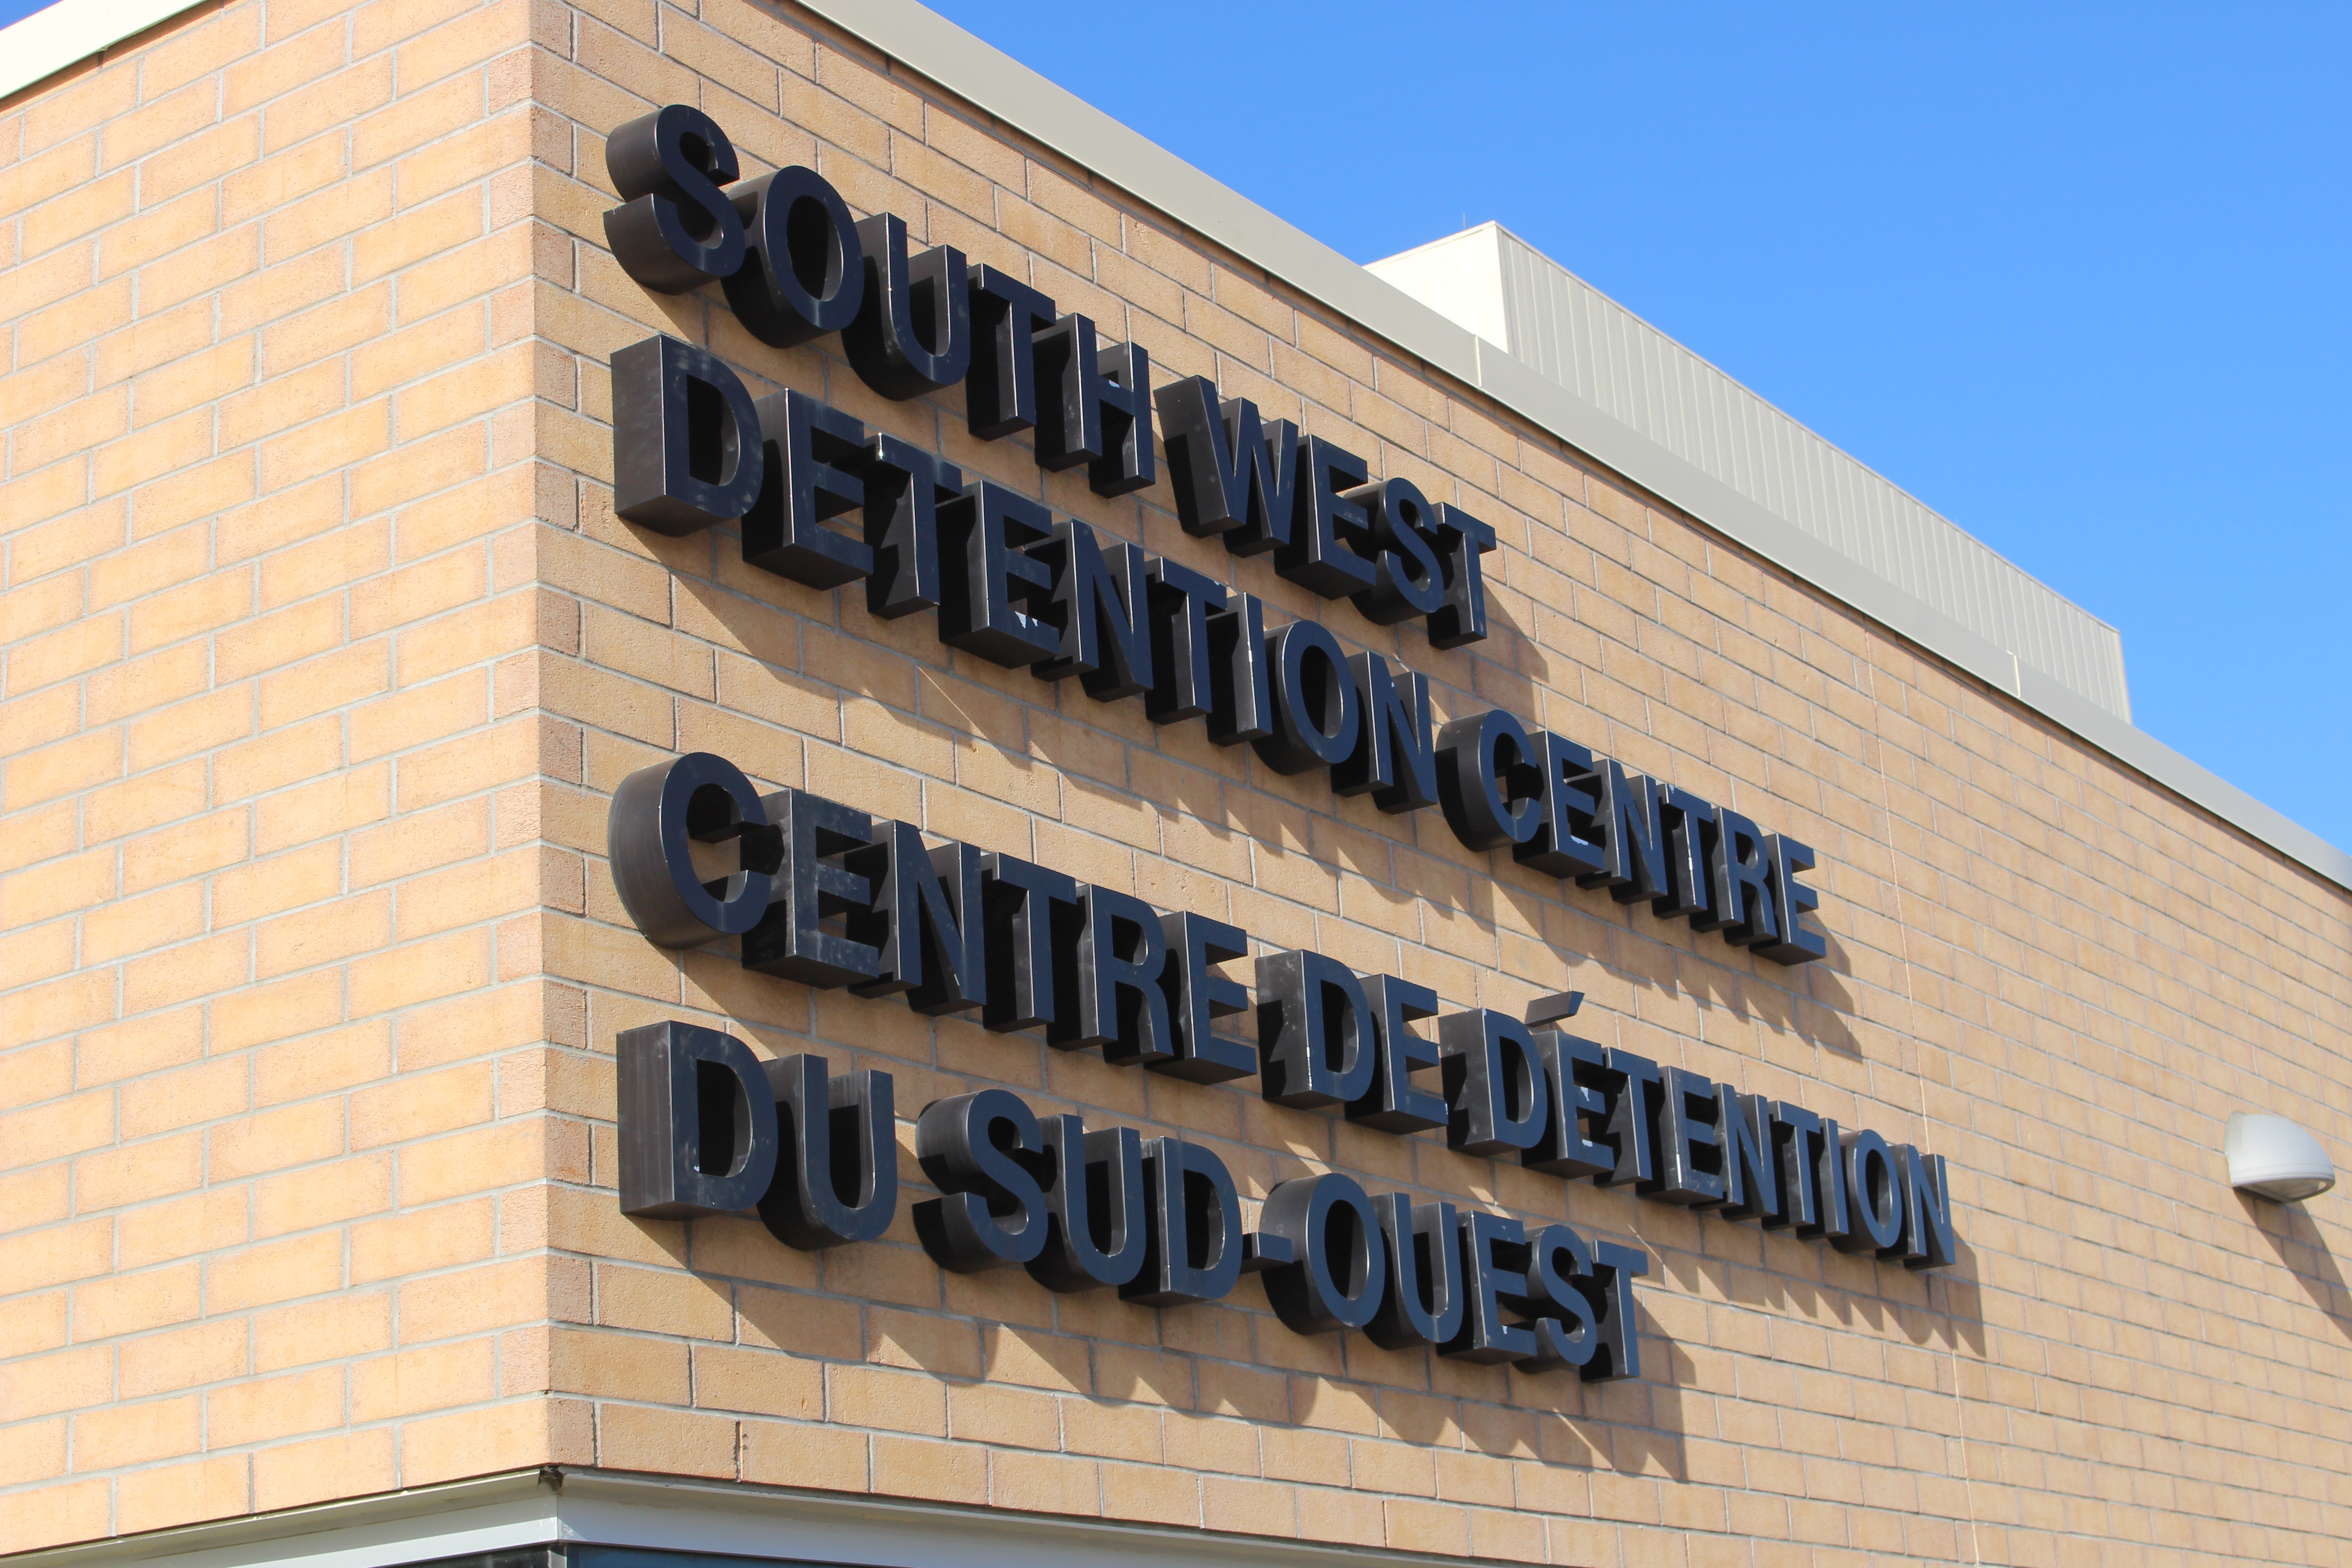 Windsor's South West Detention Centre, January 7, 2016. (Photo by Mike Vlasveld)